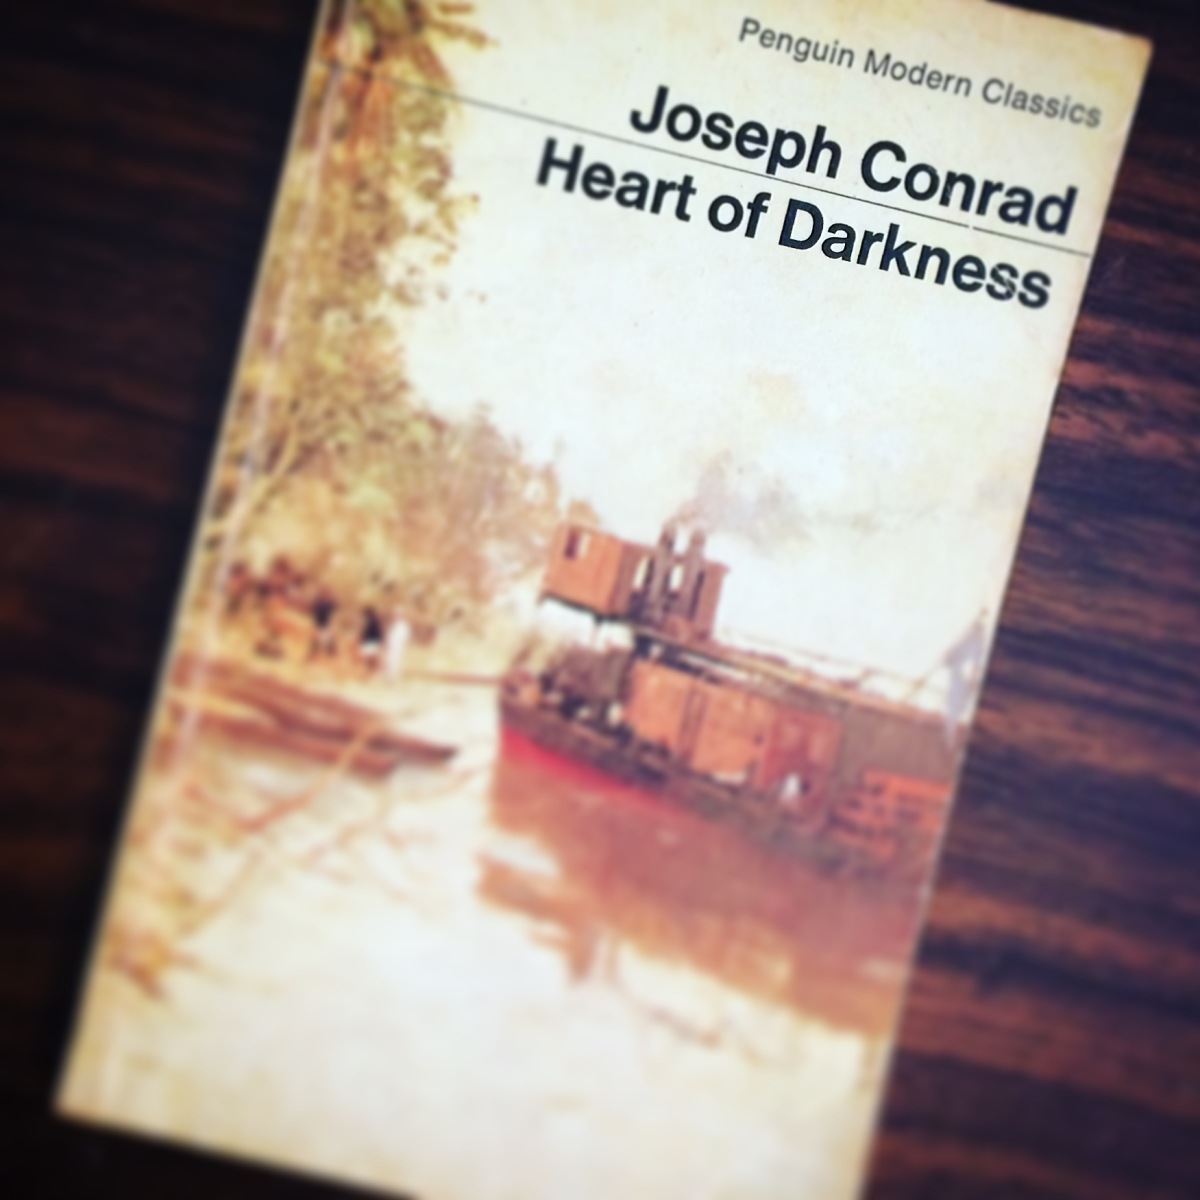 an analysis of the concept of light and dark in the novel heart of darkness by joseph conrad